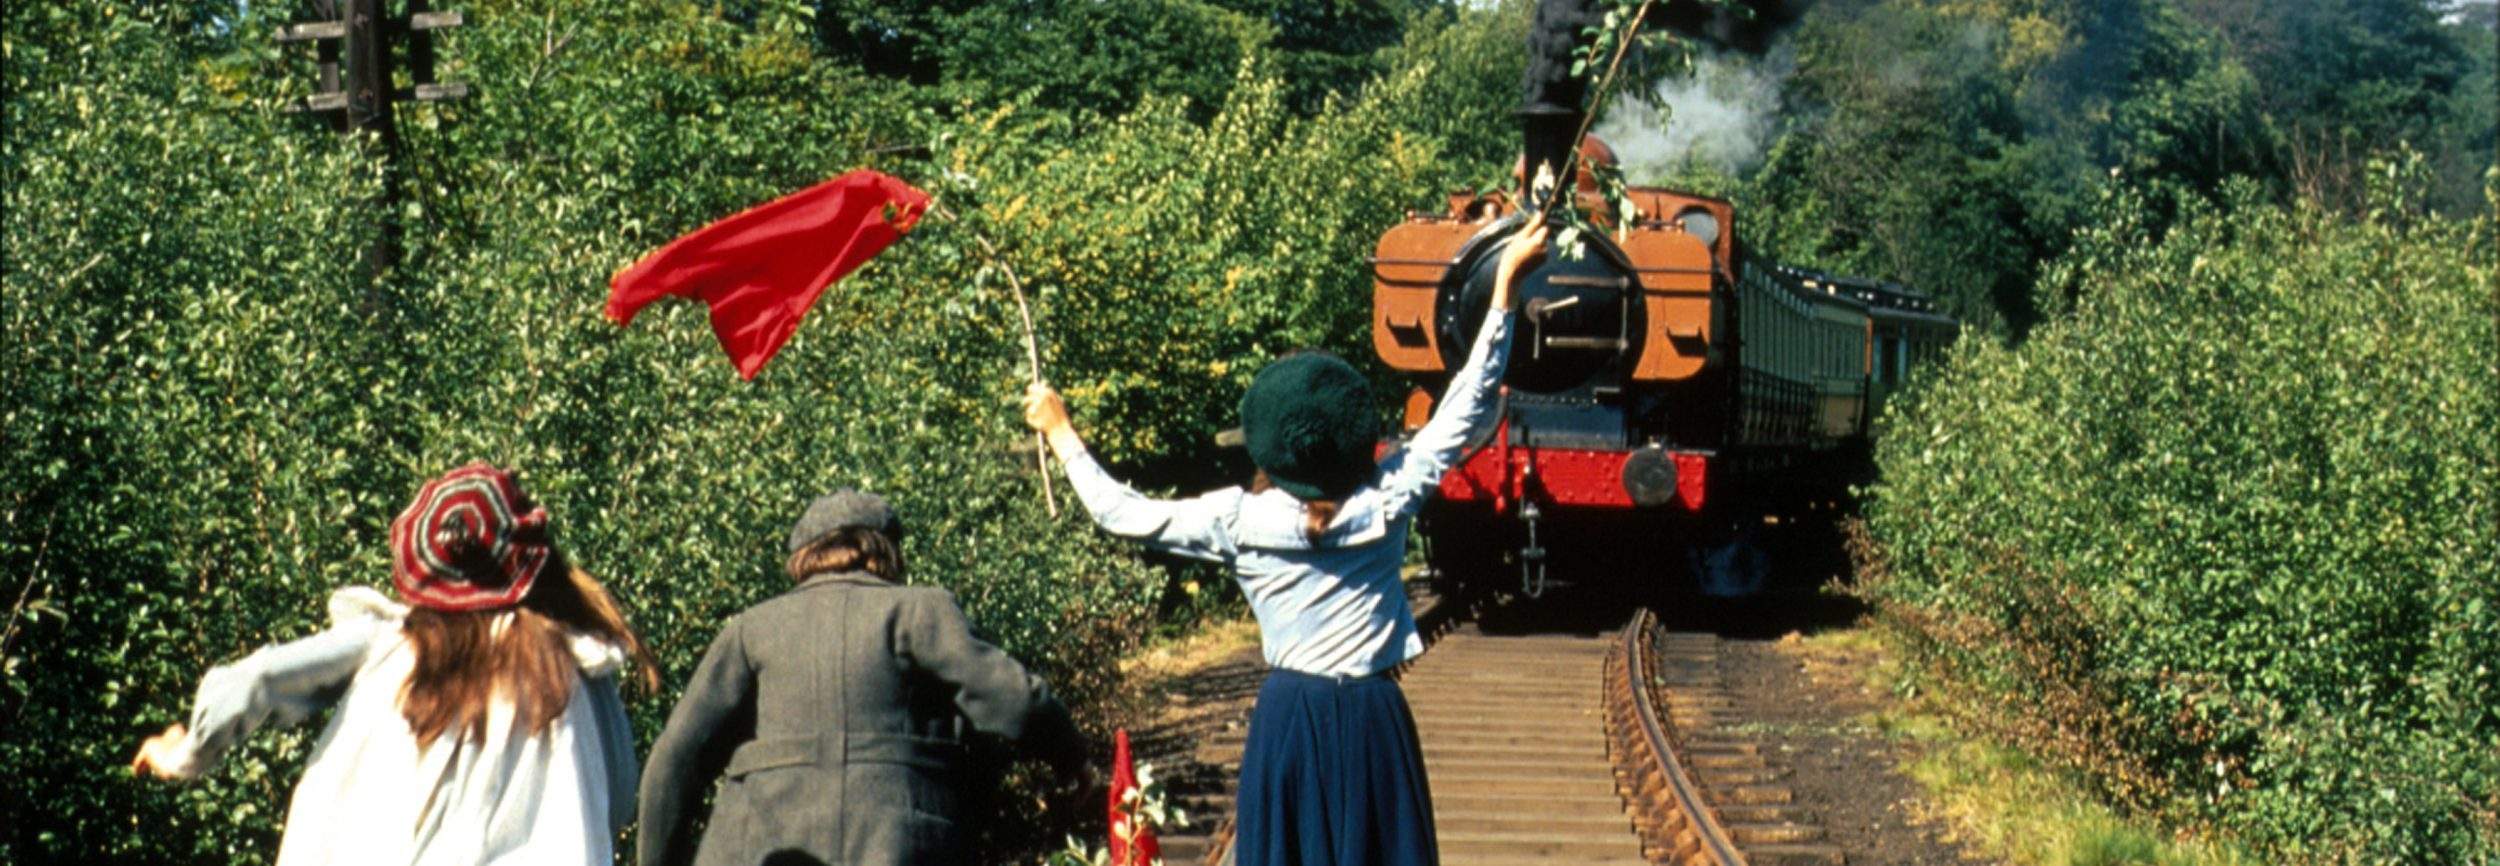 STUDIOCANAL announce principal photography and cast of The Railway Children Return